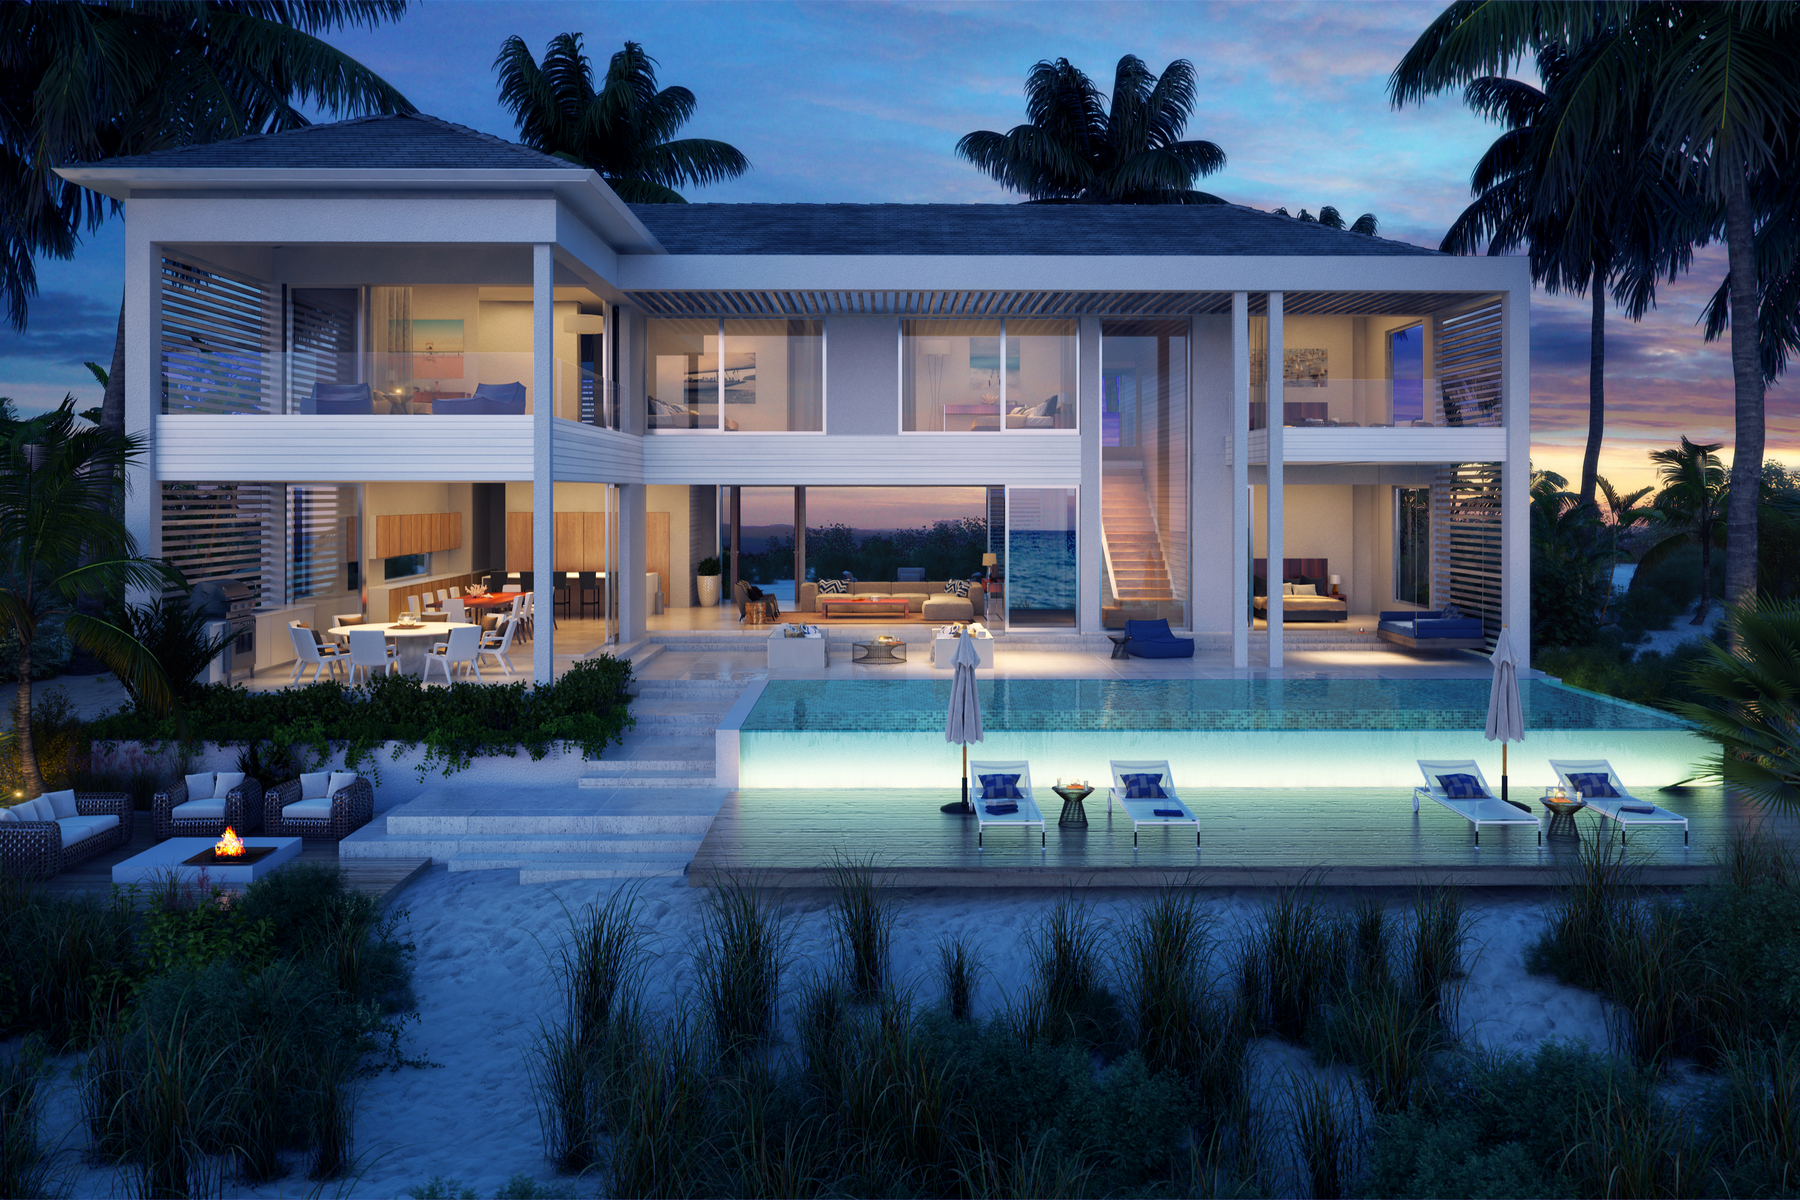 Single Family Home for Sale at BEACH ENCLAVE GRACE BAY Design B Beachfront Grace Bay, TKCA 1ZZ Turks And Caicos Islands